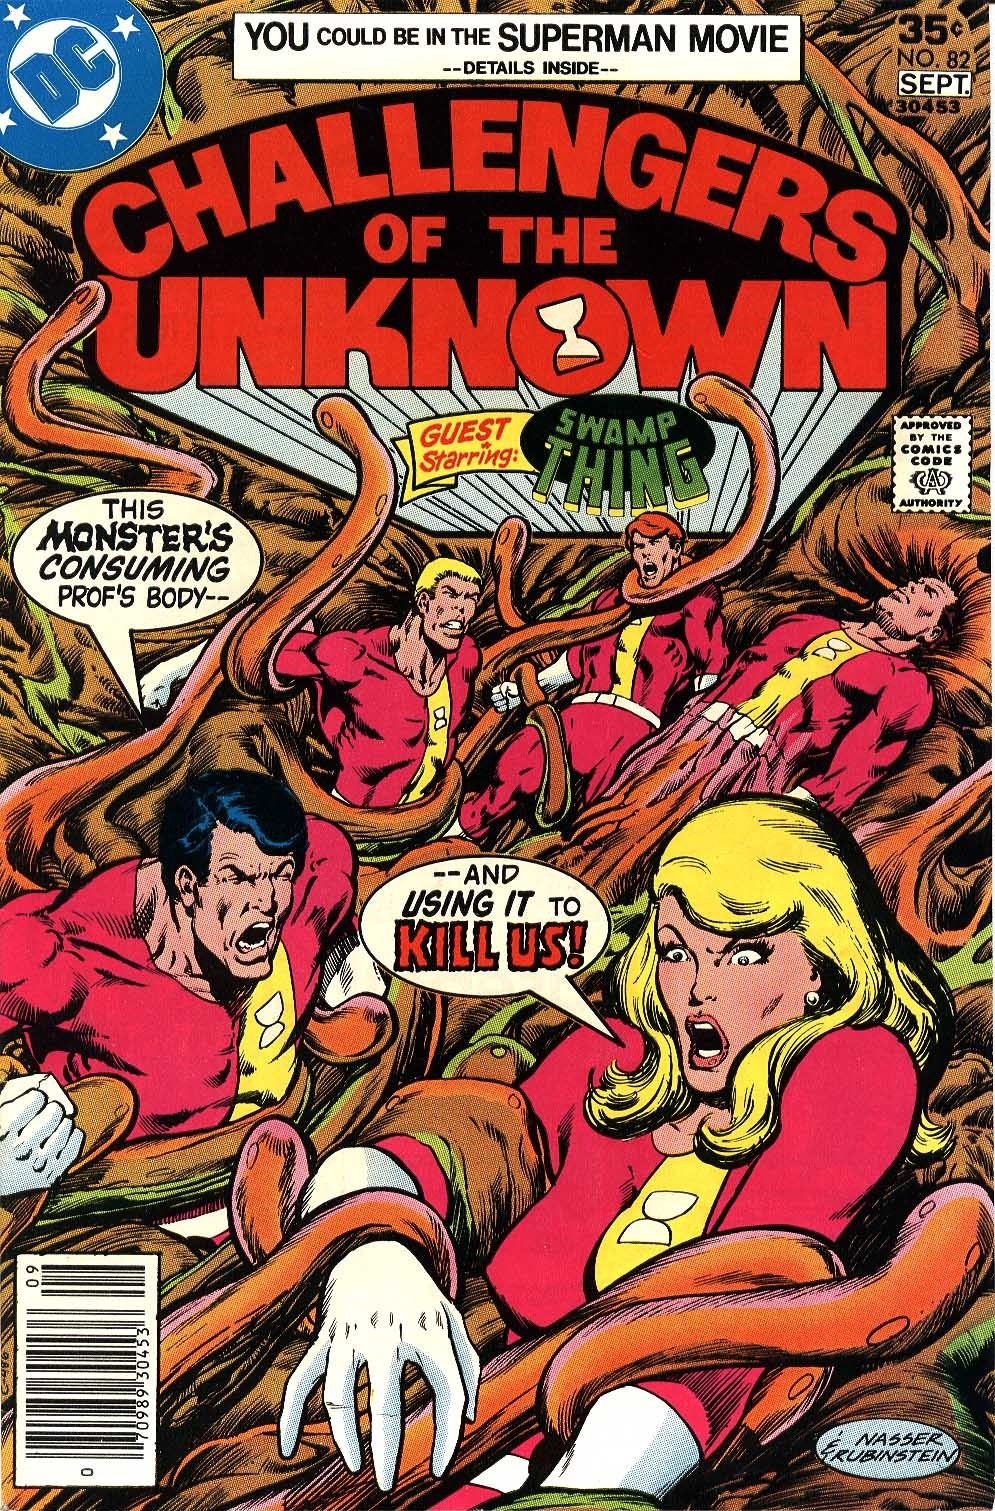 Challengers of the Unknown (1958) #82, cover penciled by Mike Nasser & inked by Joe Rubinstein.